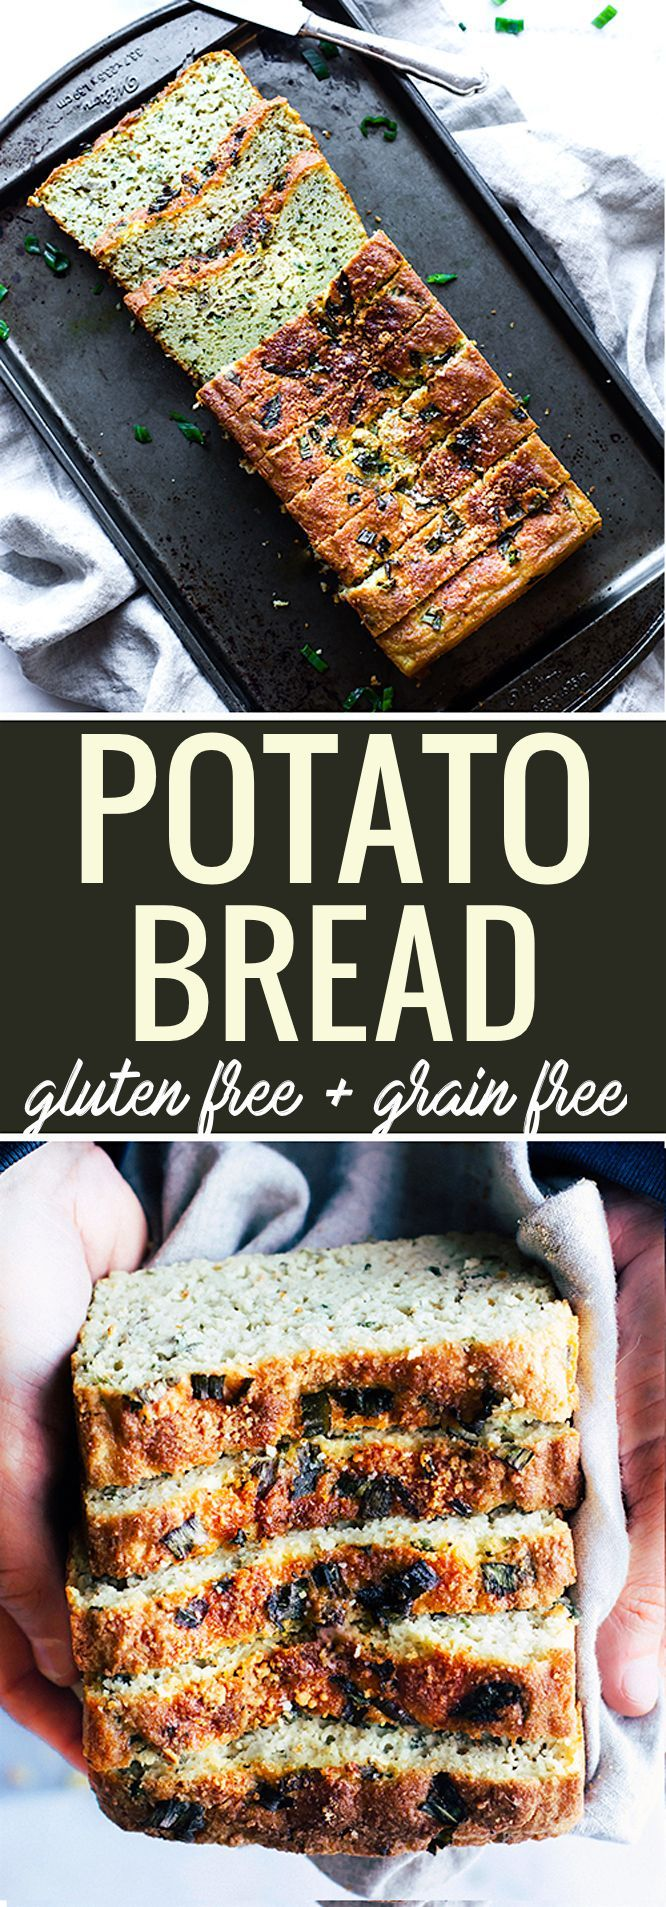 Easy Homemade Gluten Free Potato Bread with onion and herbs! This grain free and gluten free potato bread is simple to make, healthy, and delicious! A great way to use up any lefotver baked or mashed potatoes too. A homemade potato bread that hearty and f